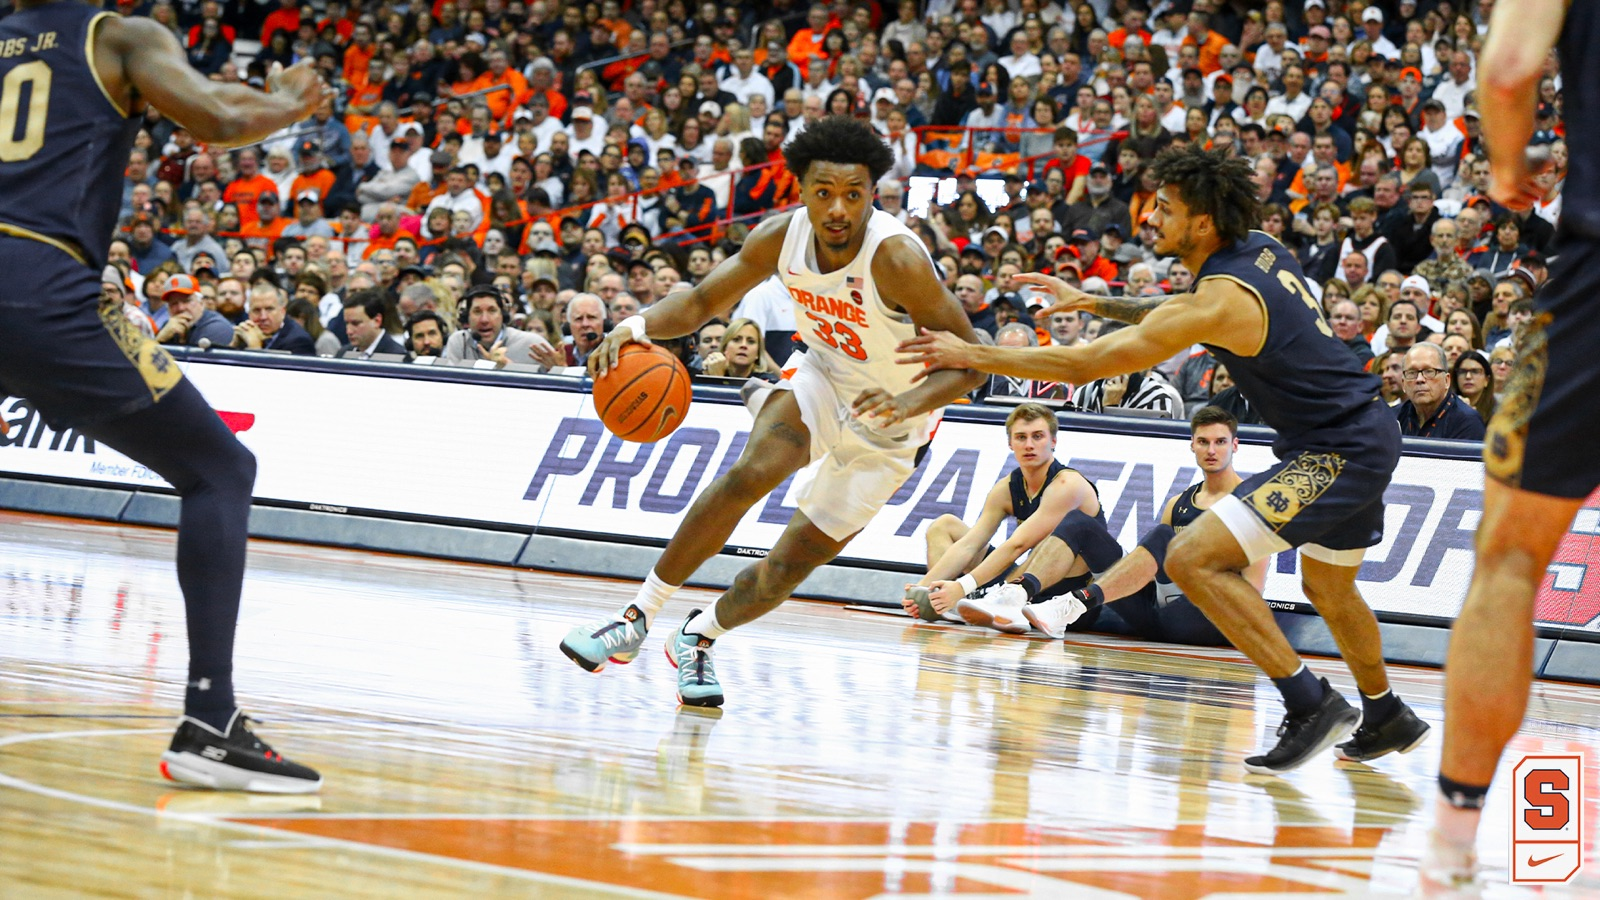 ORANGE GAME DAY: Syracuse hosts Notre Dame, looking for fourth consecutive victory (preview & info)